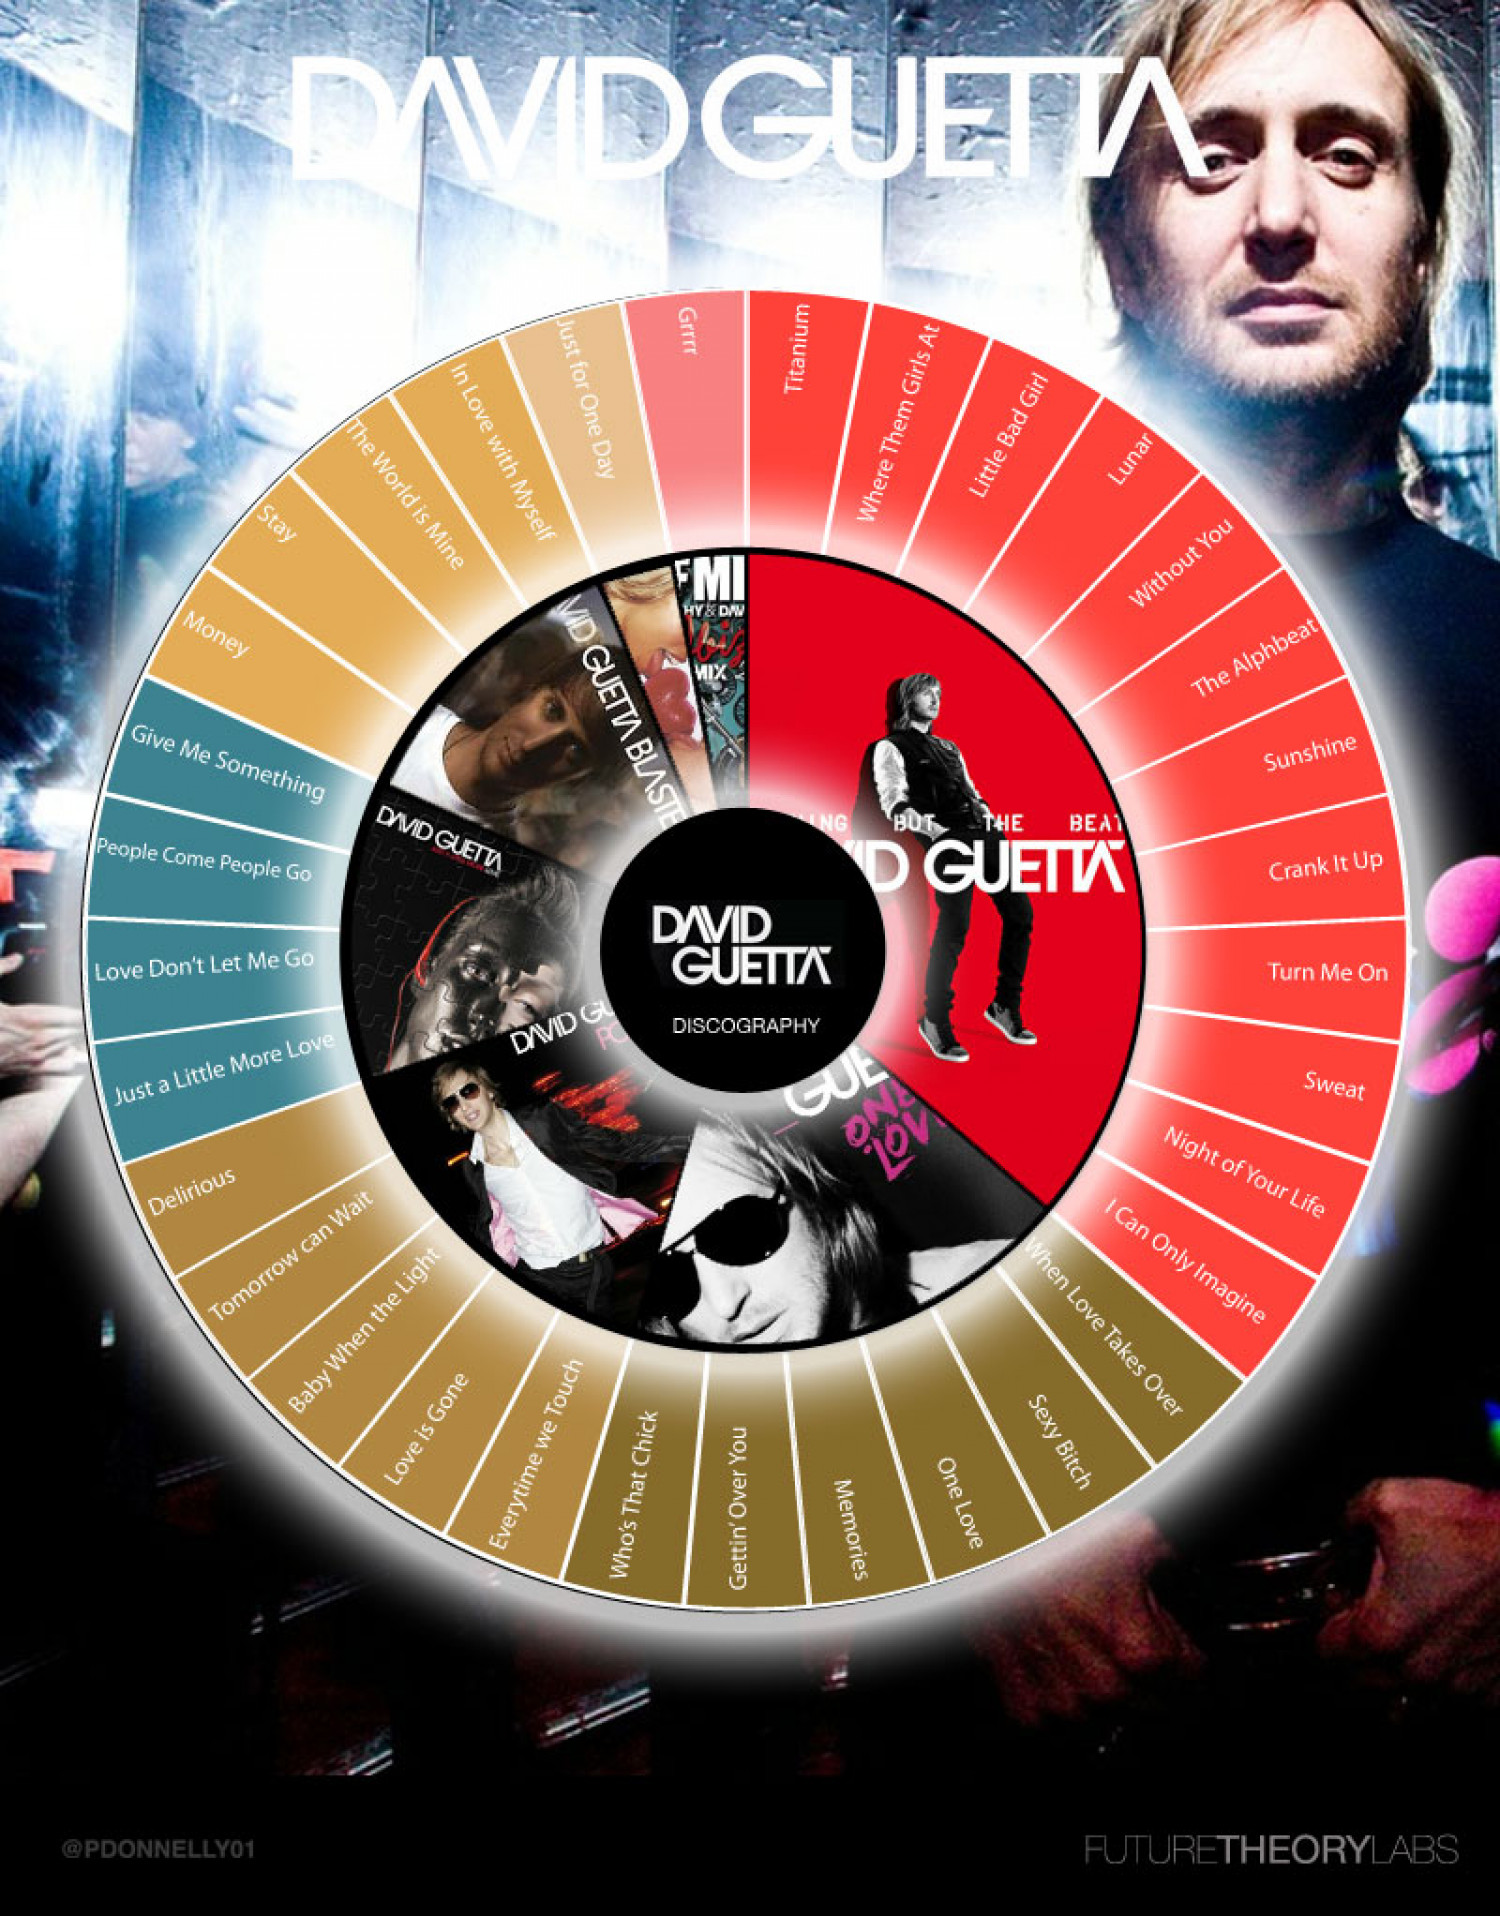 David Guetta Discography Infographic